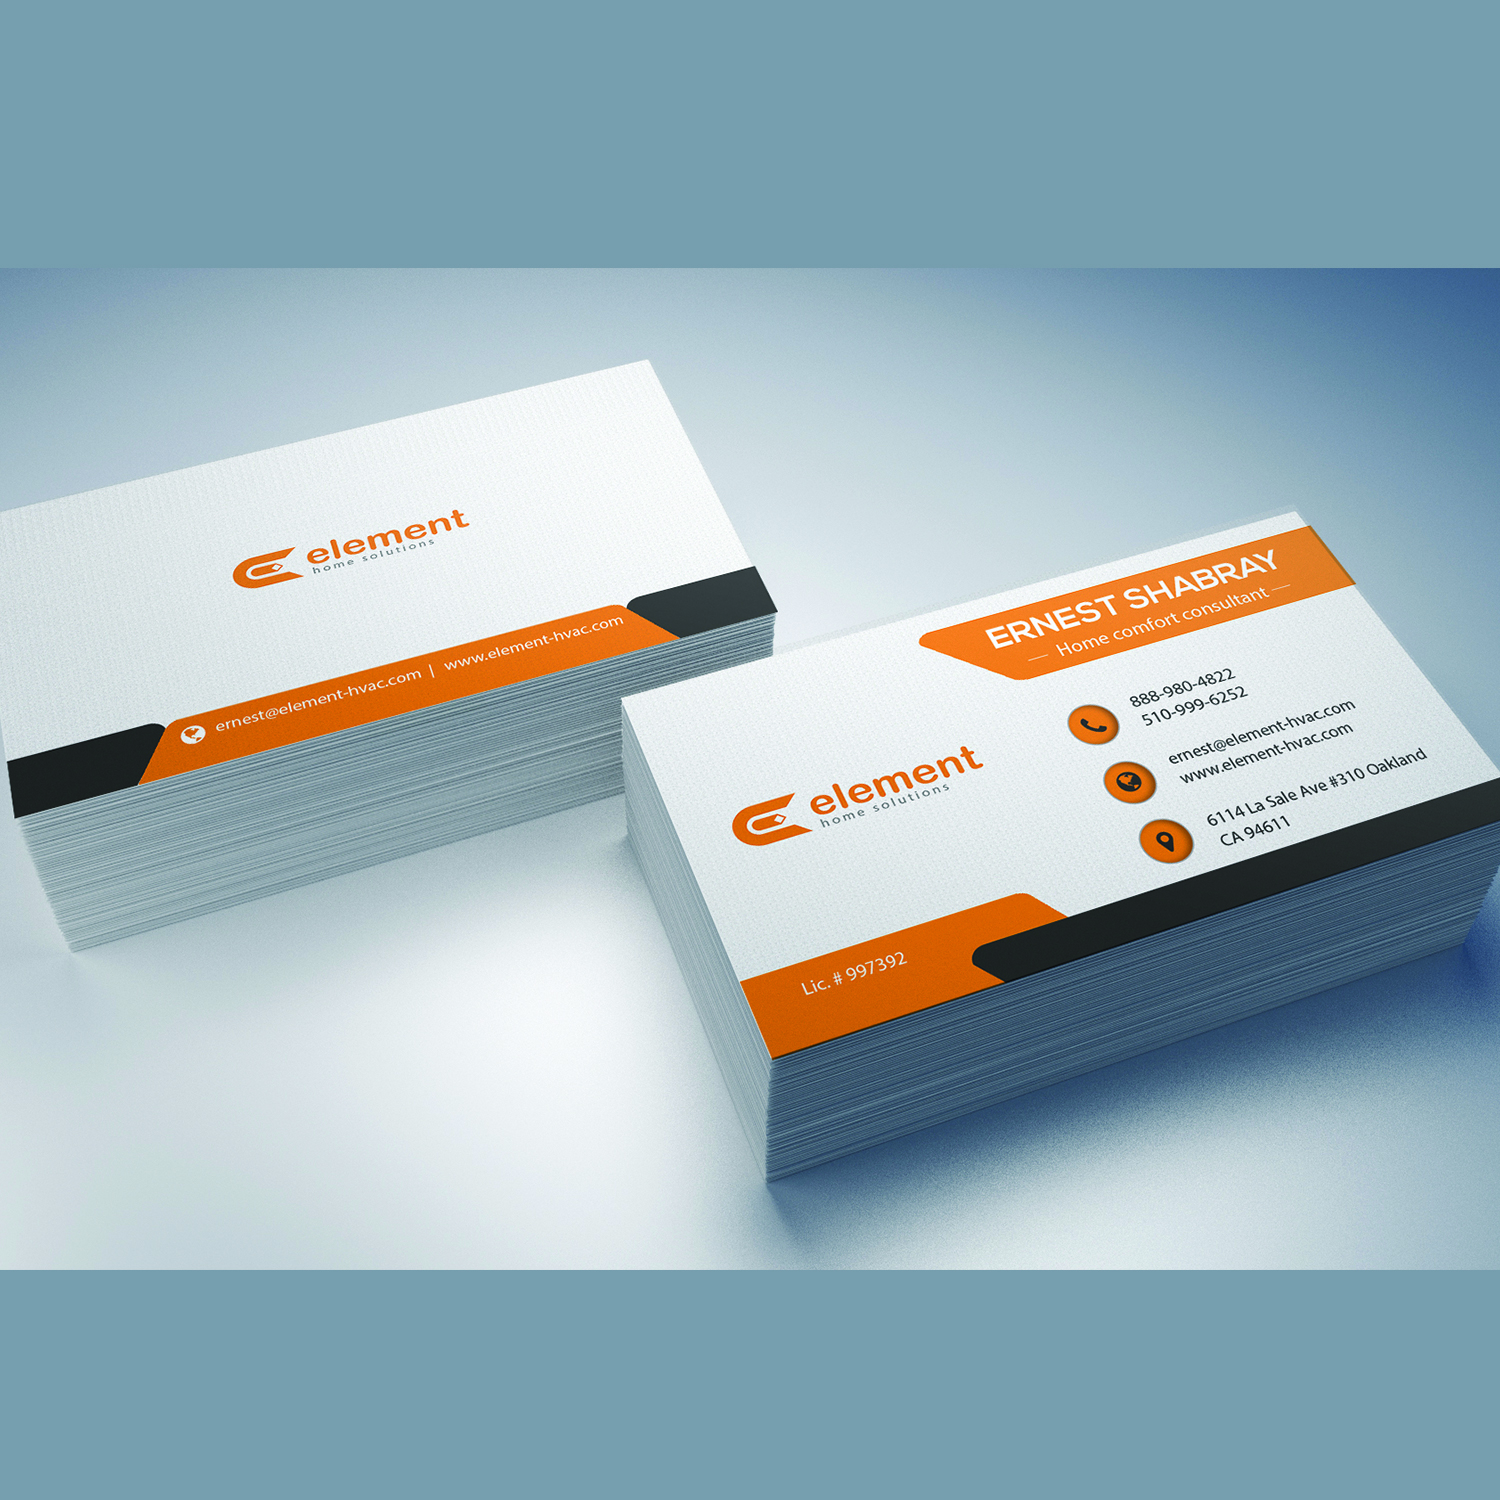 Bold, Playful, Hvac Business Card Design for a Company by Mishuy ...